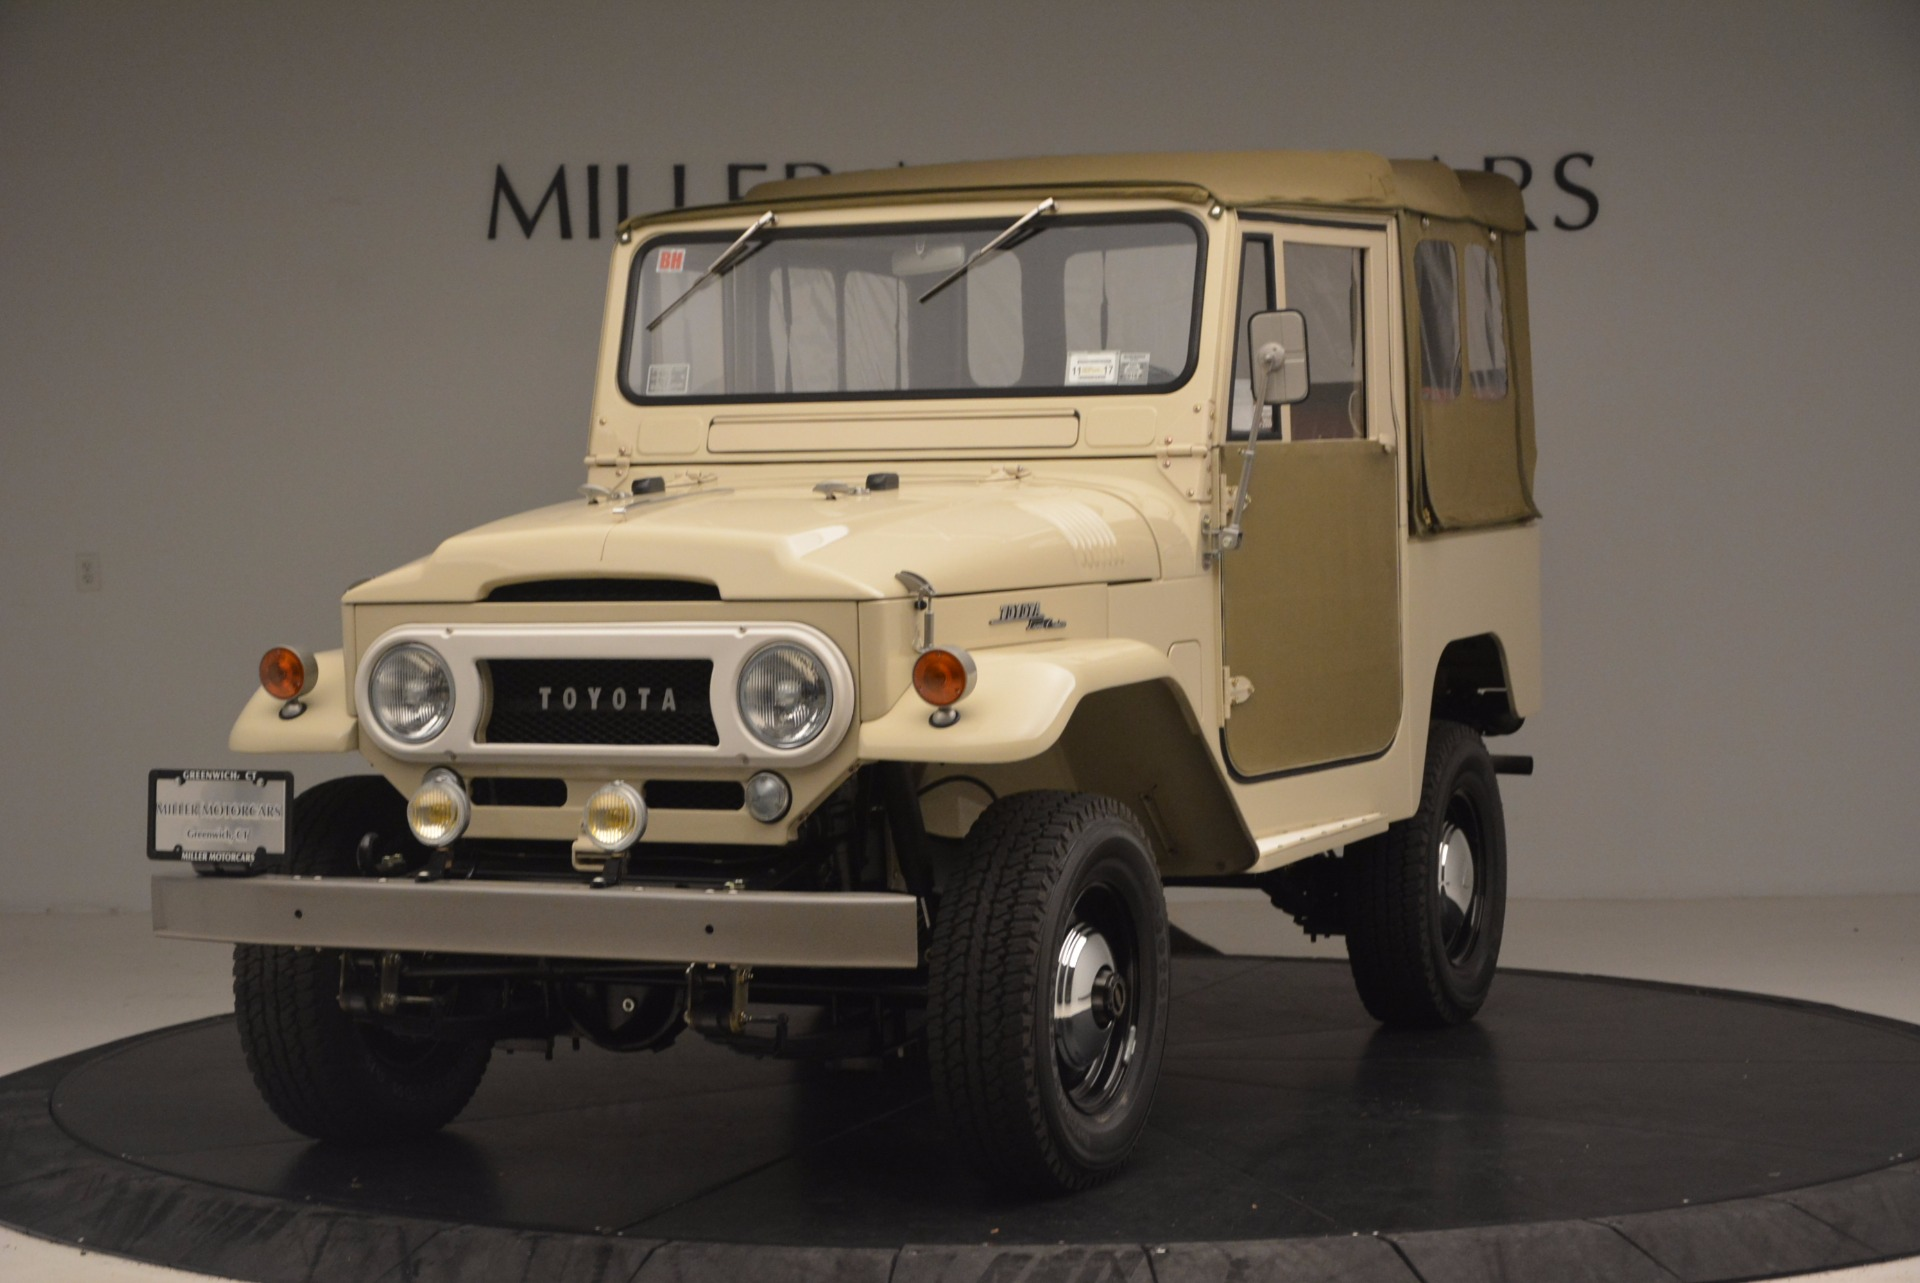 Used 1966 Toyota FJ40 Land Cruiser Land Cruiser for sale Sold at Bentley Greenwich in Greenwich CT 06830 1